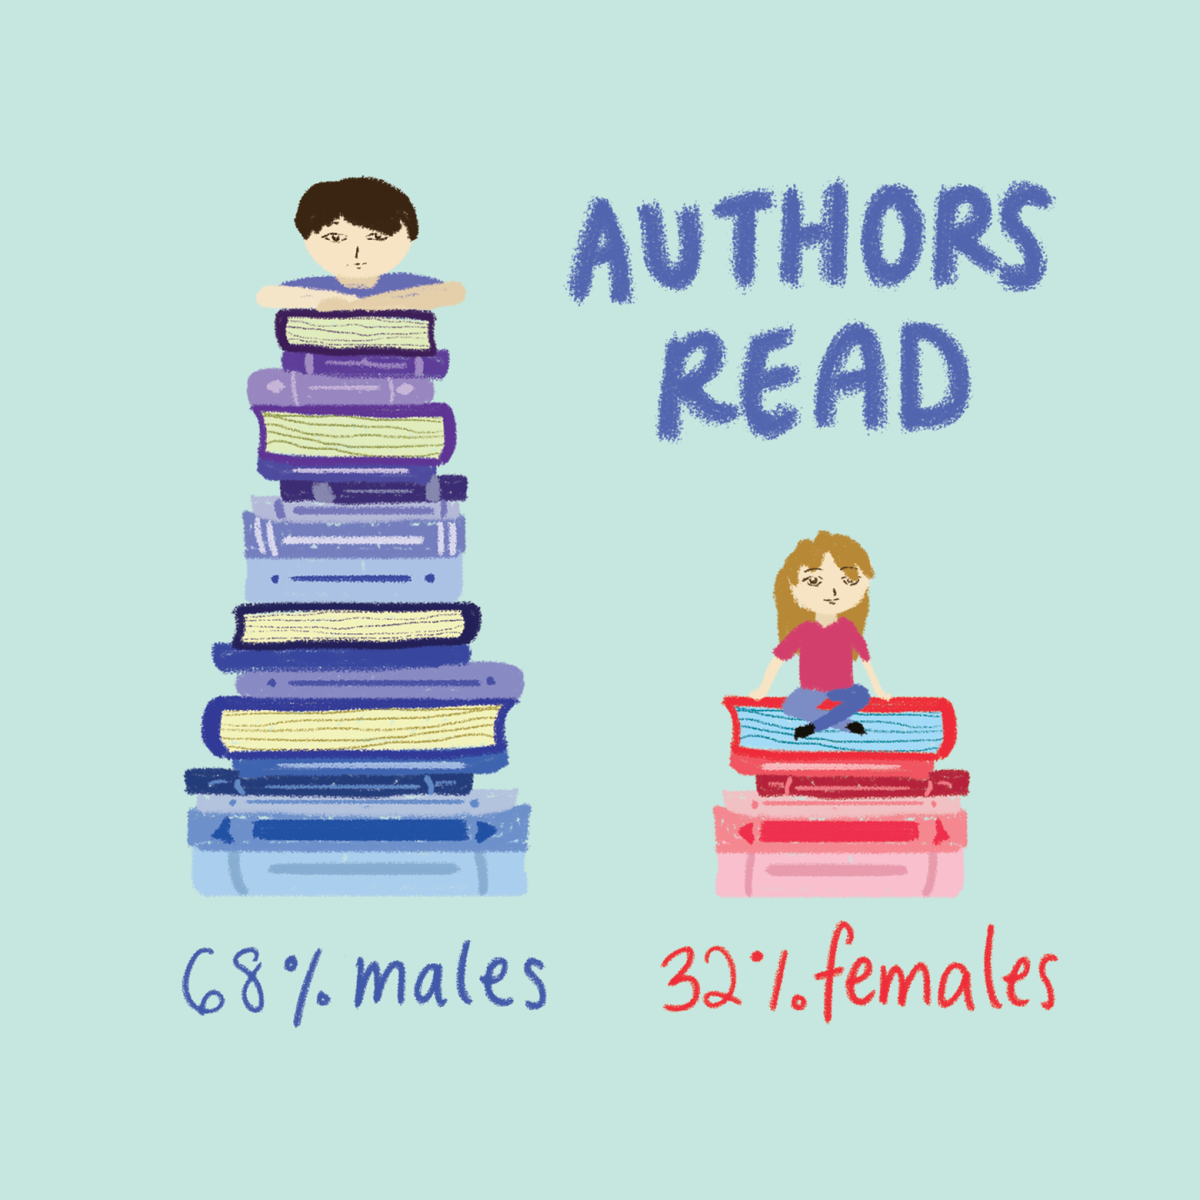 Female vs male authors (Graphic)